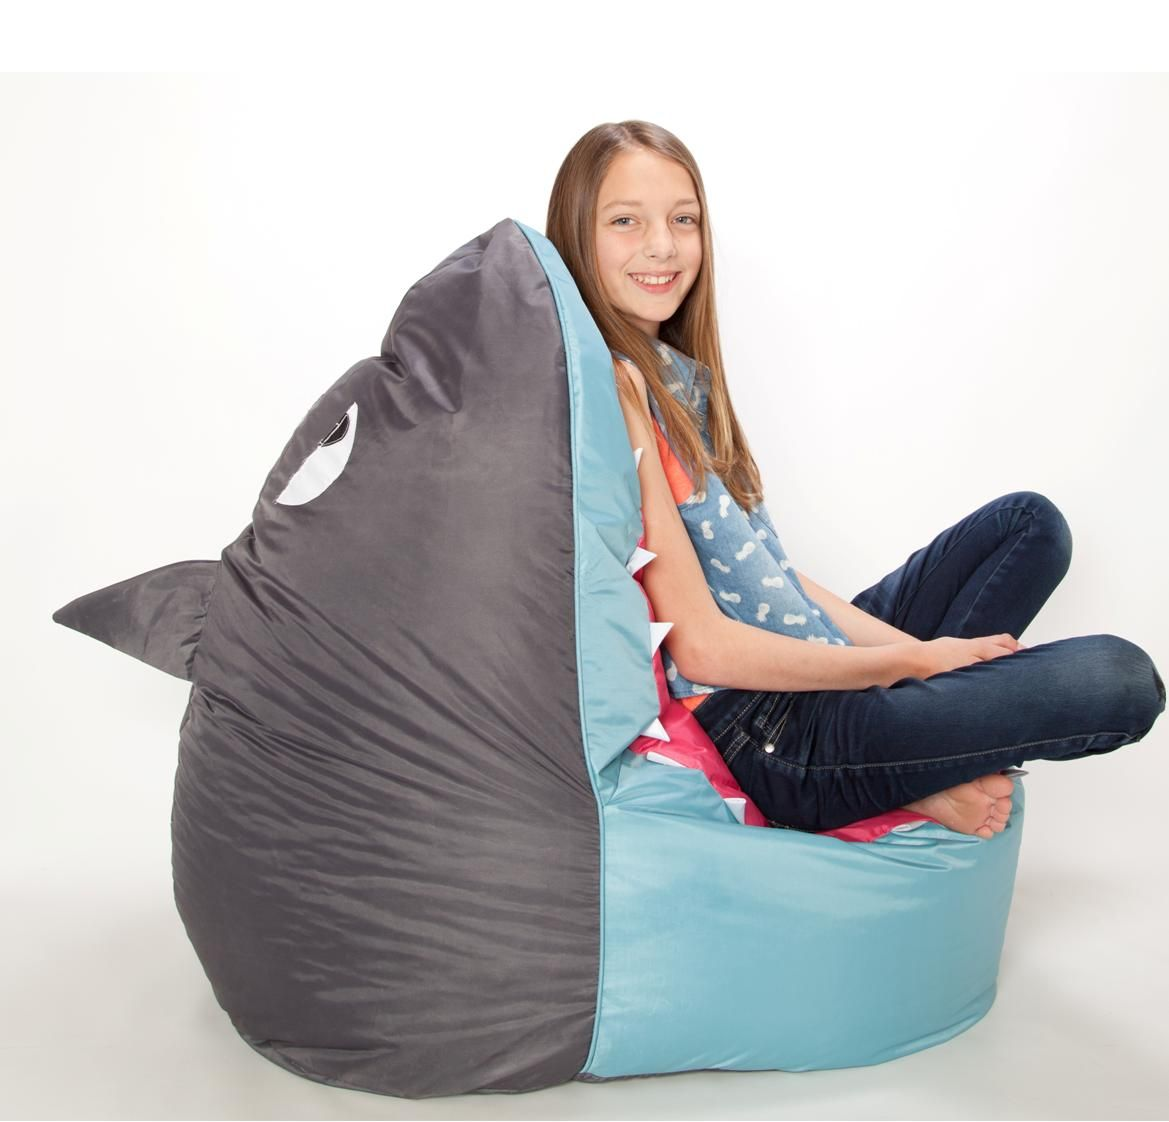 Prime Shark Chair Bean Bag Without Filling In 2018 Kids Safety Andrewgaddart Wooden Chair Designs For Living Room Andrewgaddartcom